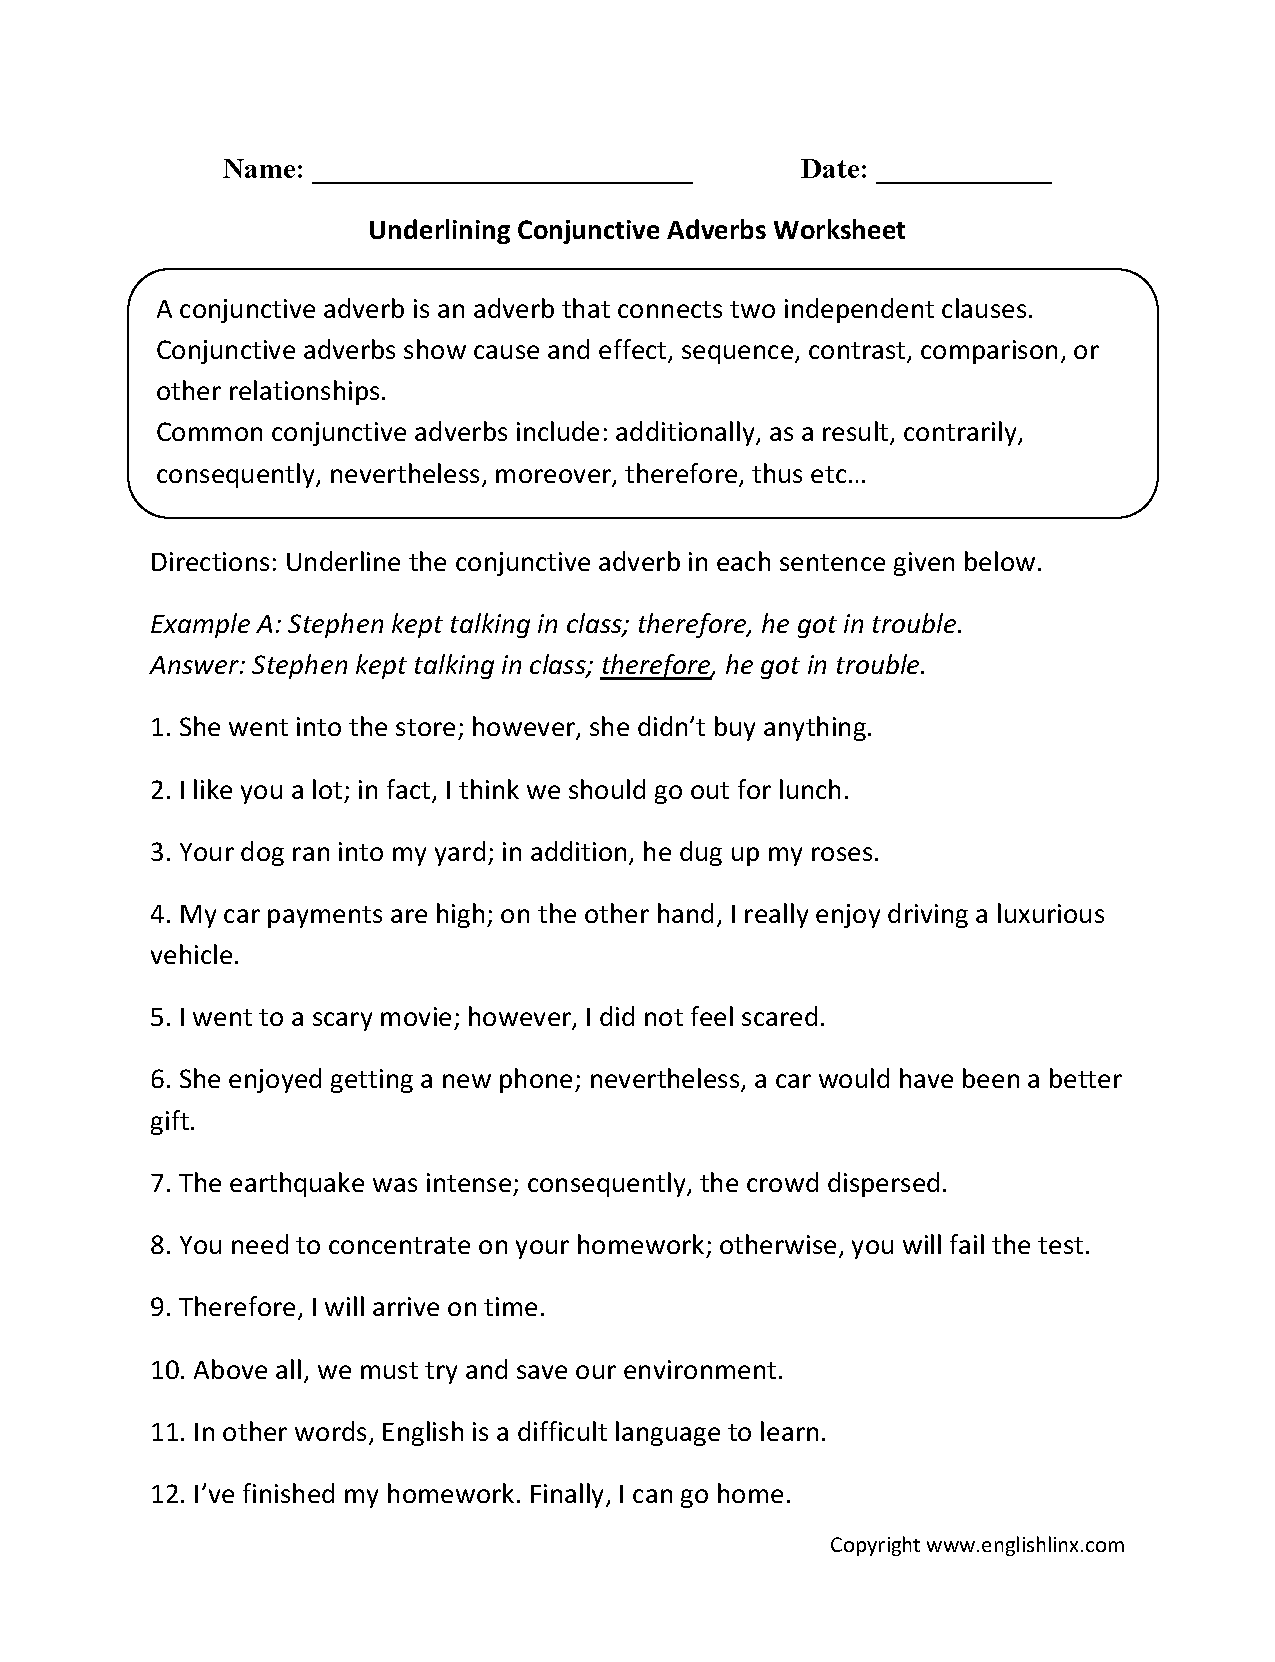 Proatmealus  Picturesque Englishlinxcom  Conjunctions Worksheets With Inspiring Worksheet With Amazing Changes In Matter Worksheet Also Step  Worksheet In Addition Solve Multi Step Equations Worksheet And Types Of Forces Worksheet As Well As Mitosis Worksheet   Diagram Identification Answers Additionally Print Worksheets On One Page From Englishlinxcom With Proatmealus  Inspiring Englishlinxcom  Conjunctions Worksheets With Amazing Worksheet And Picturesque Changes In Matter Worksheet Also Step  Worksheet In Addition Solve Multi Step Equations Worksheet From Englishlinxcom